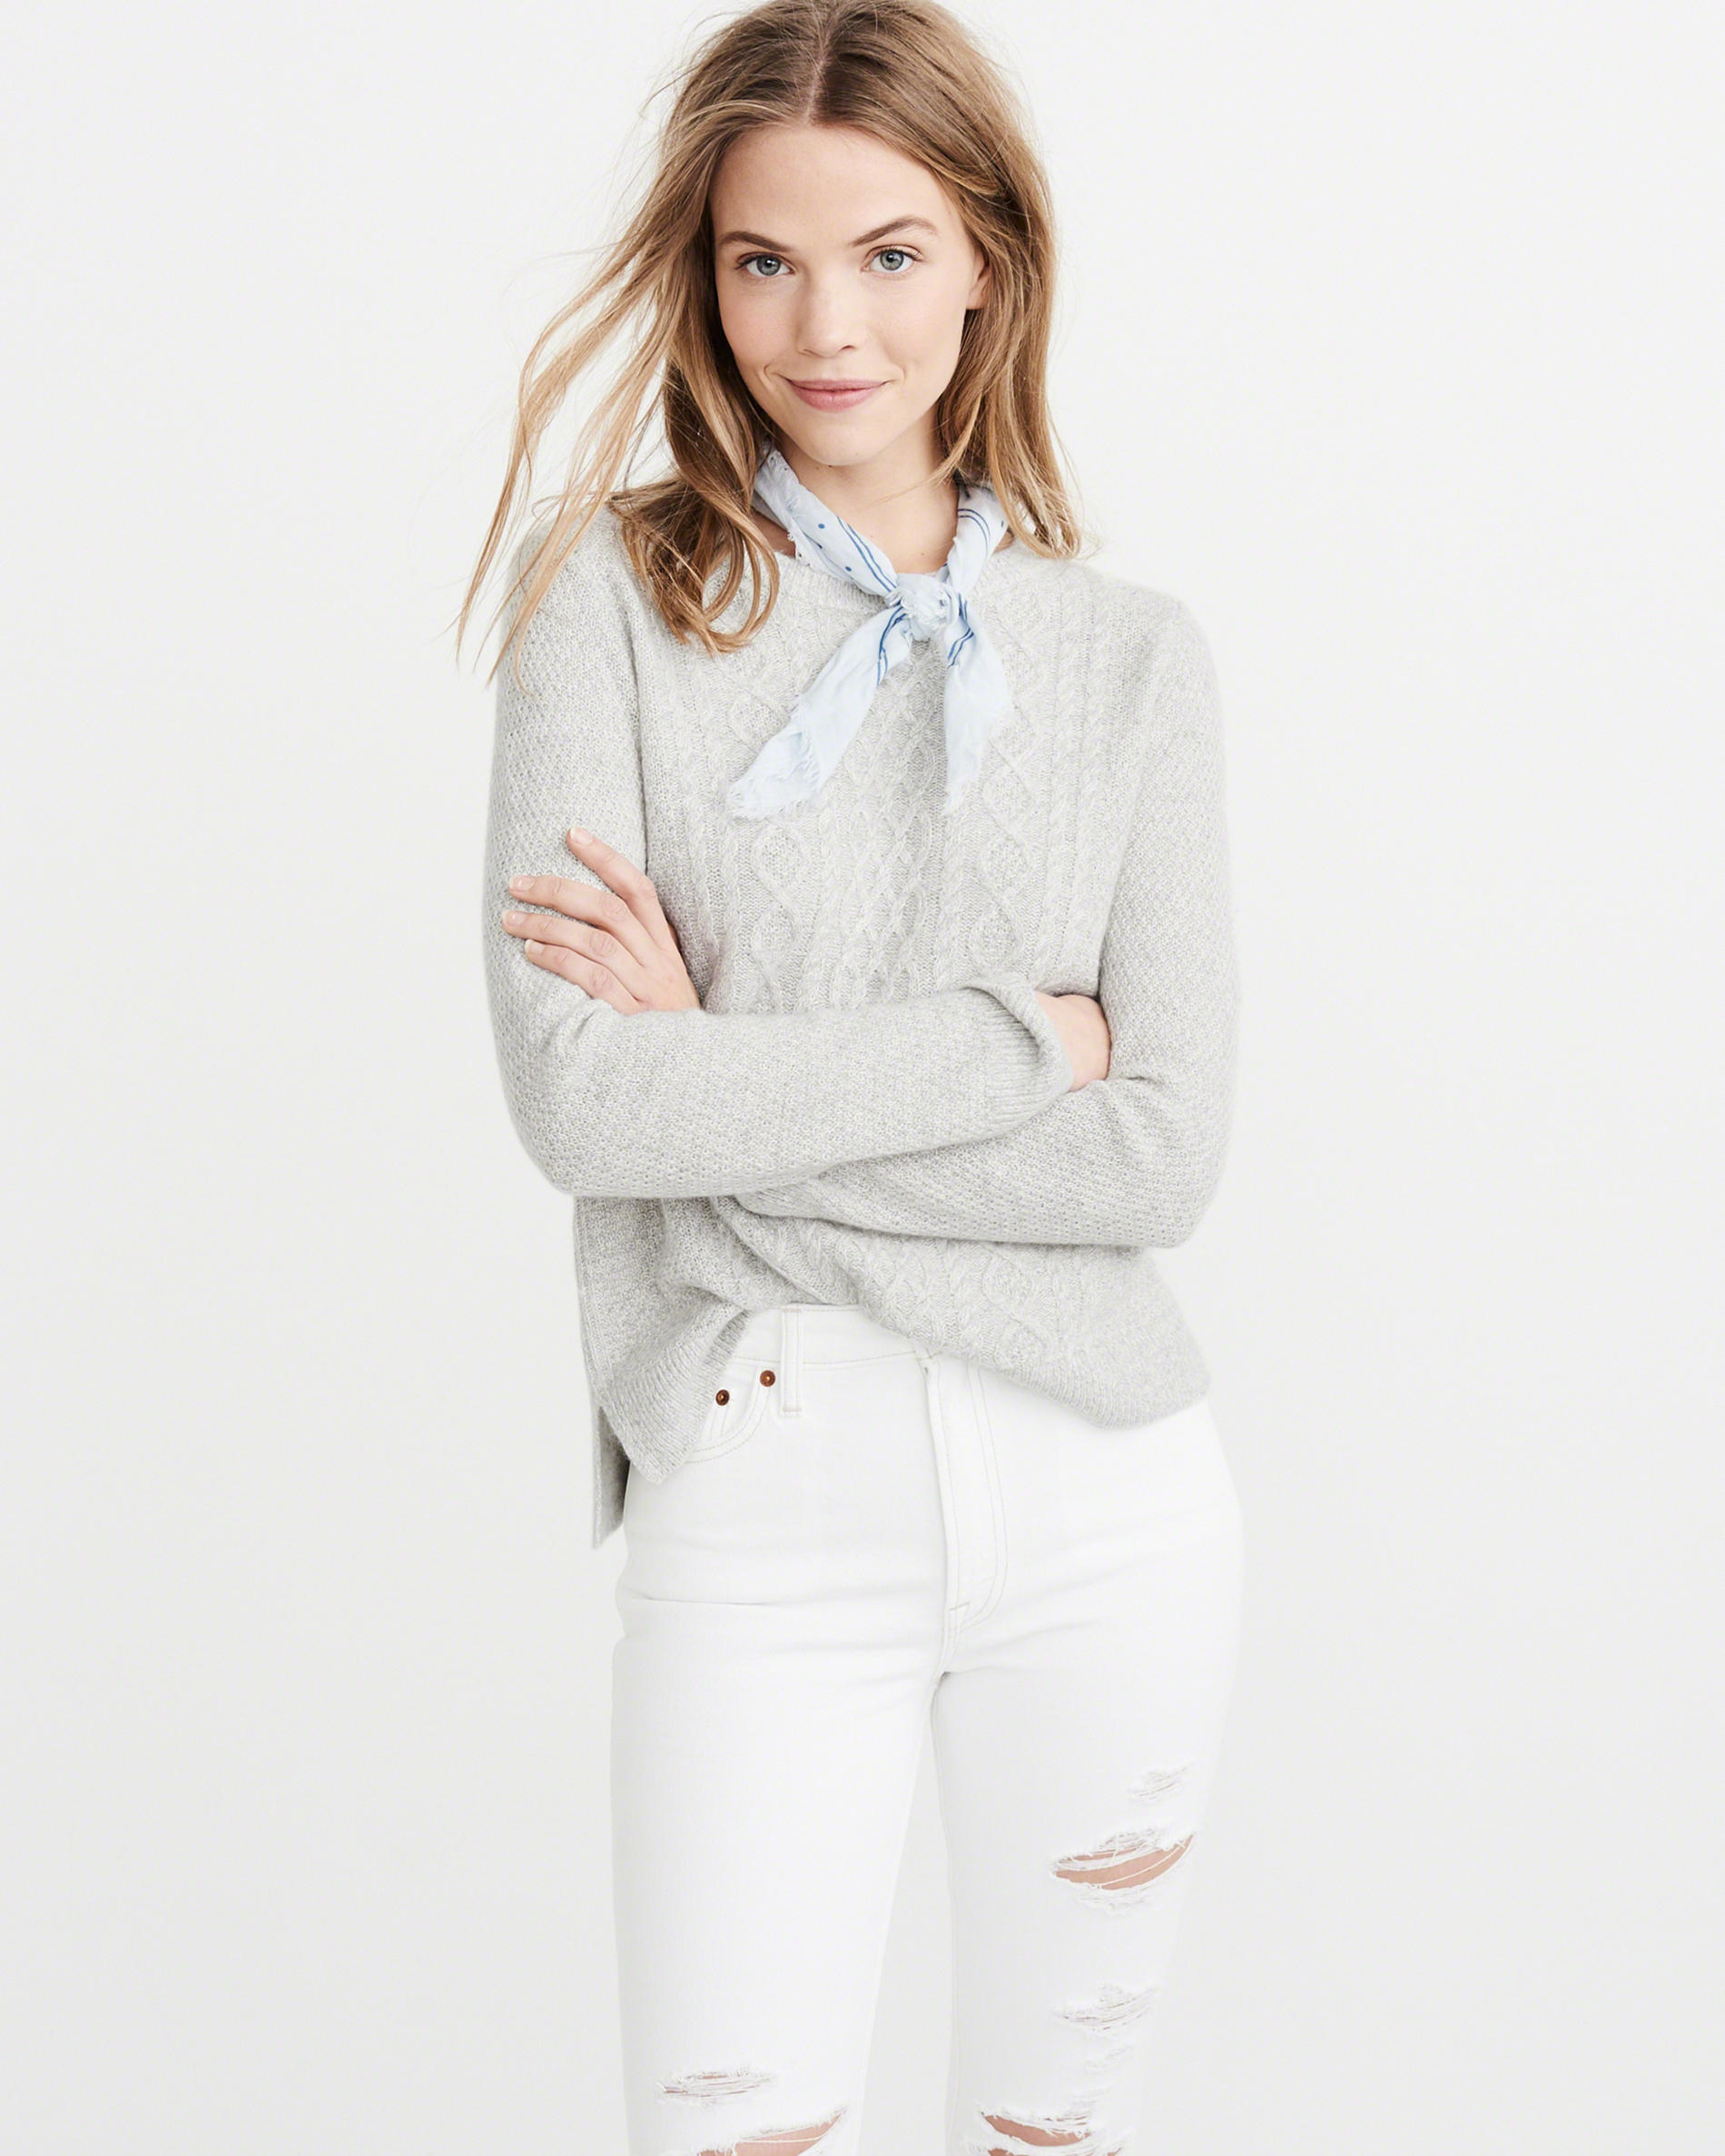 Cashmere-Linen Blend Sweater - Weekly Finds by popular North Carolina style blogger Glitter, Inc.